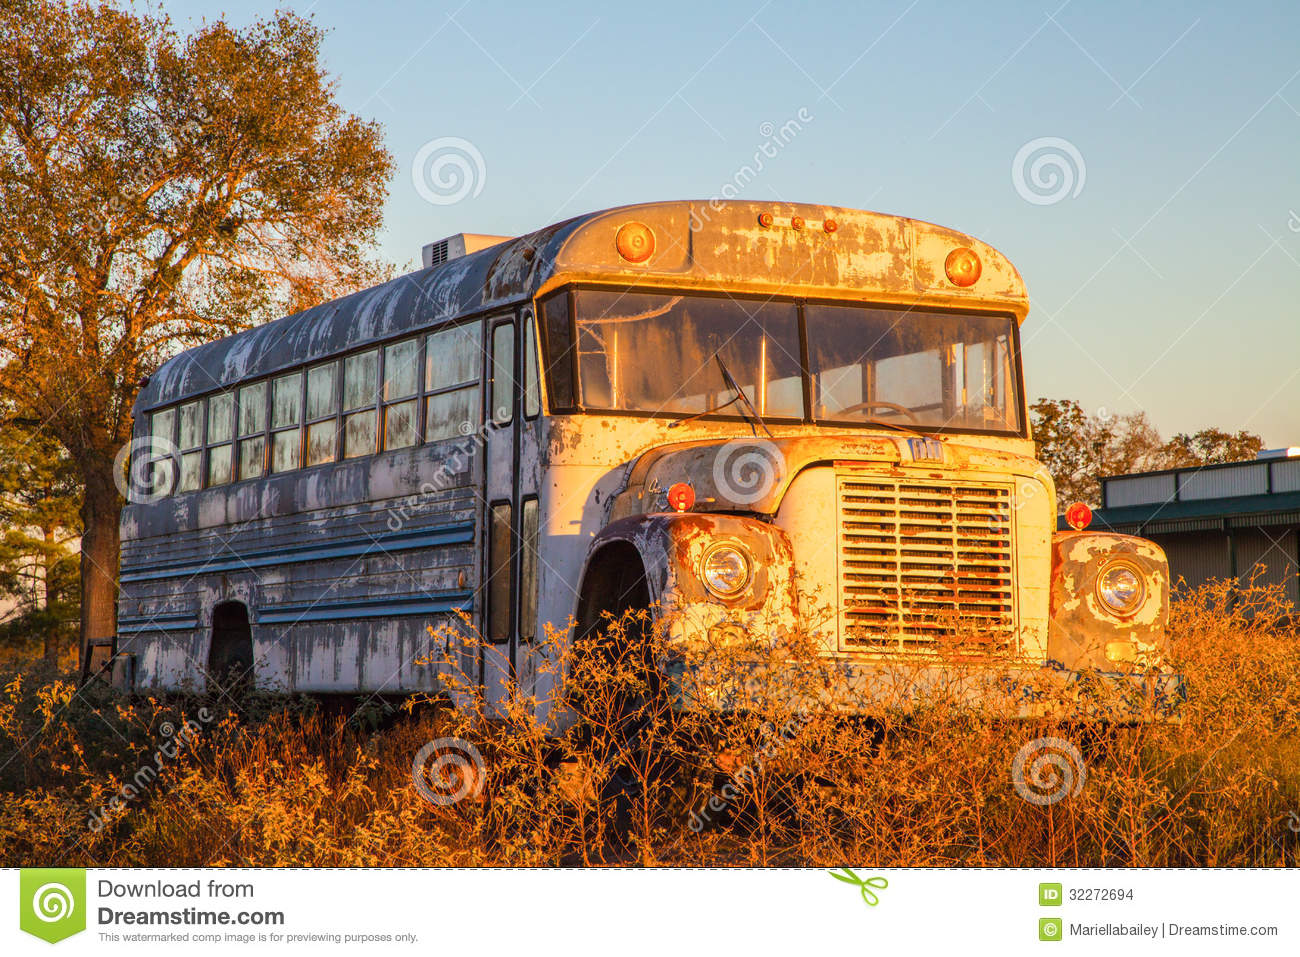 School Bus Junkyard Stock Photos, Images, & Pictures.